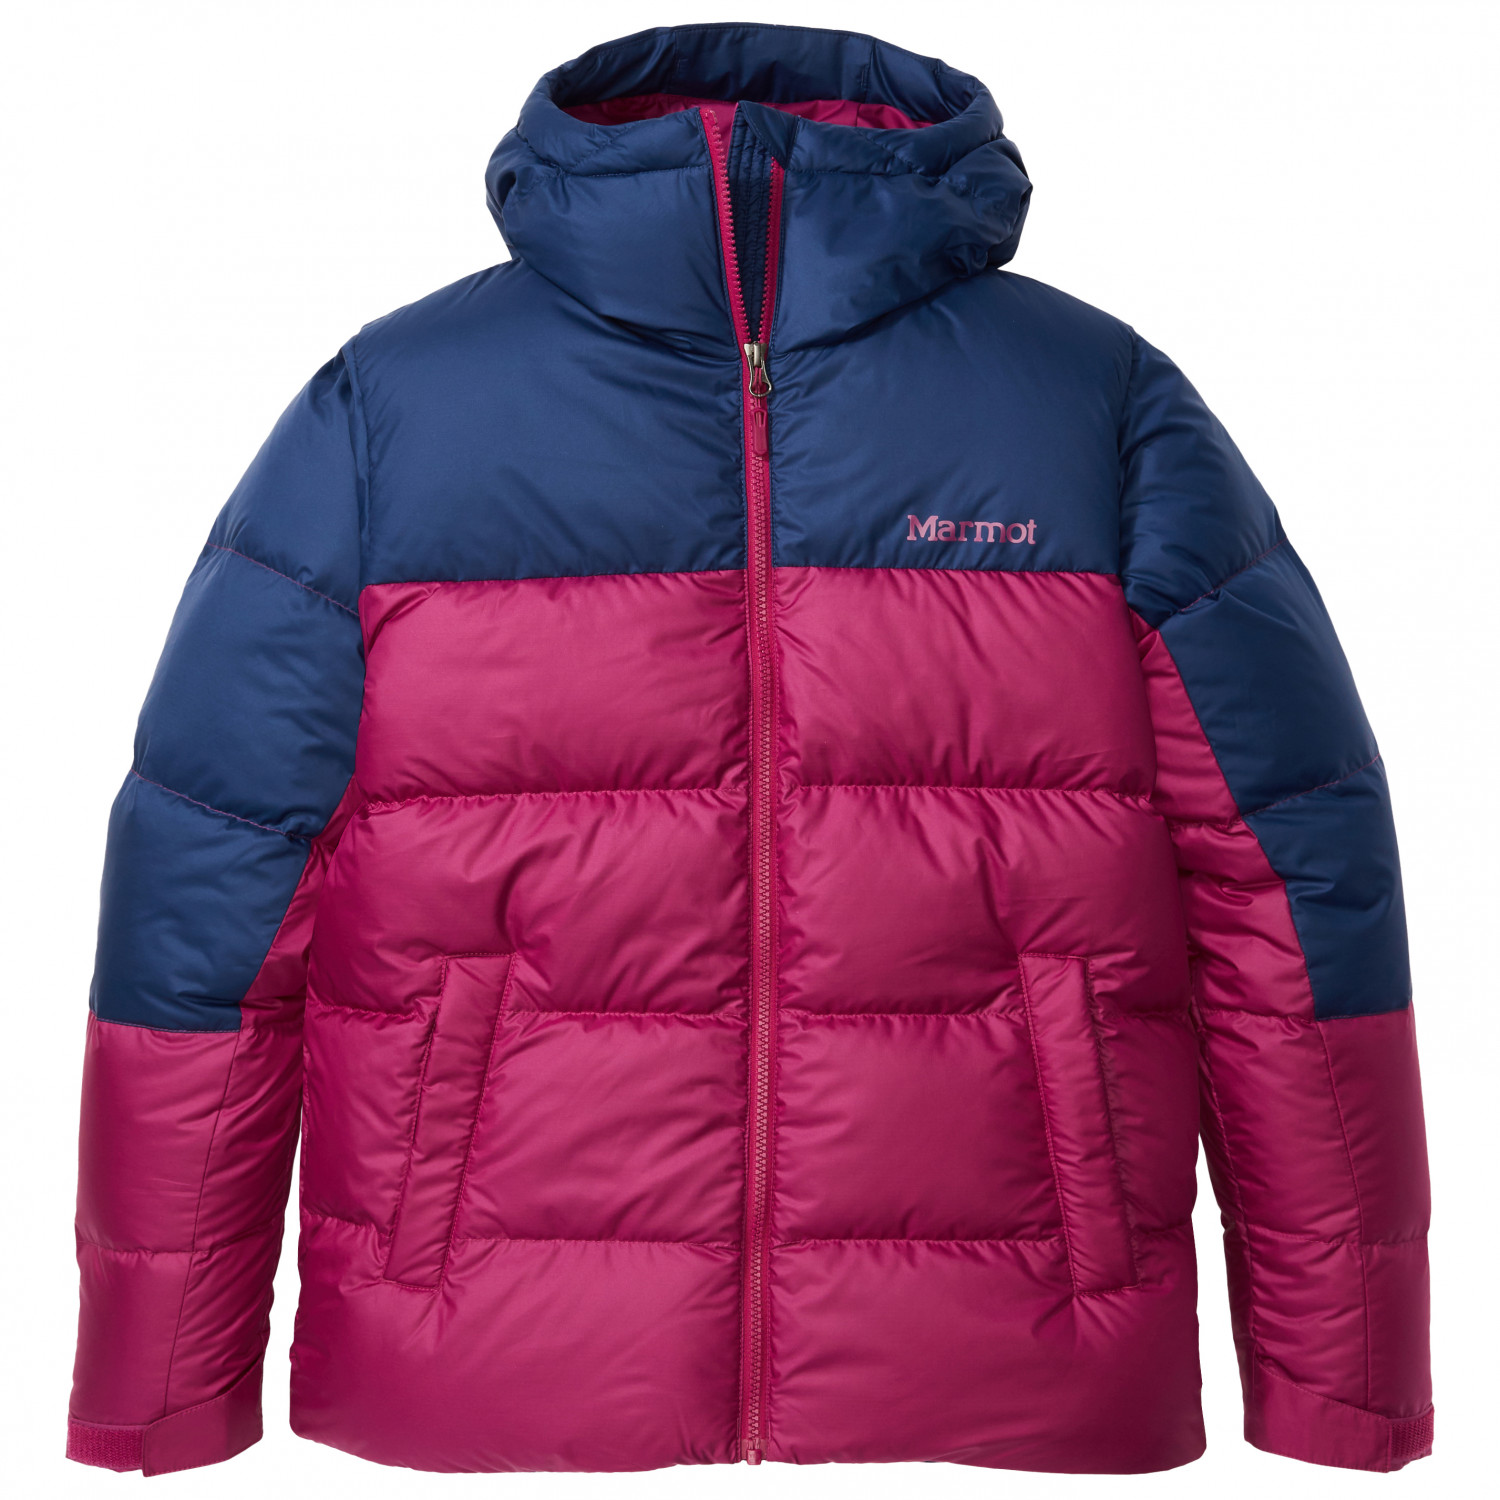 Marmot Womens Guides Down Hoodie Jacket Womens Jacket